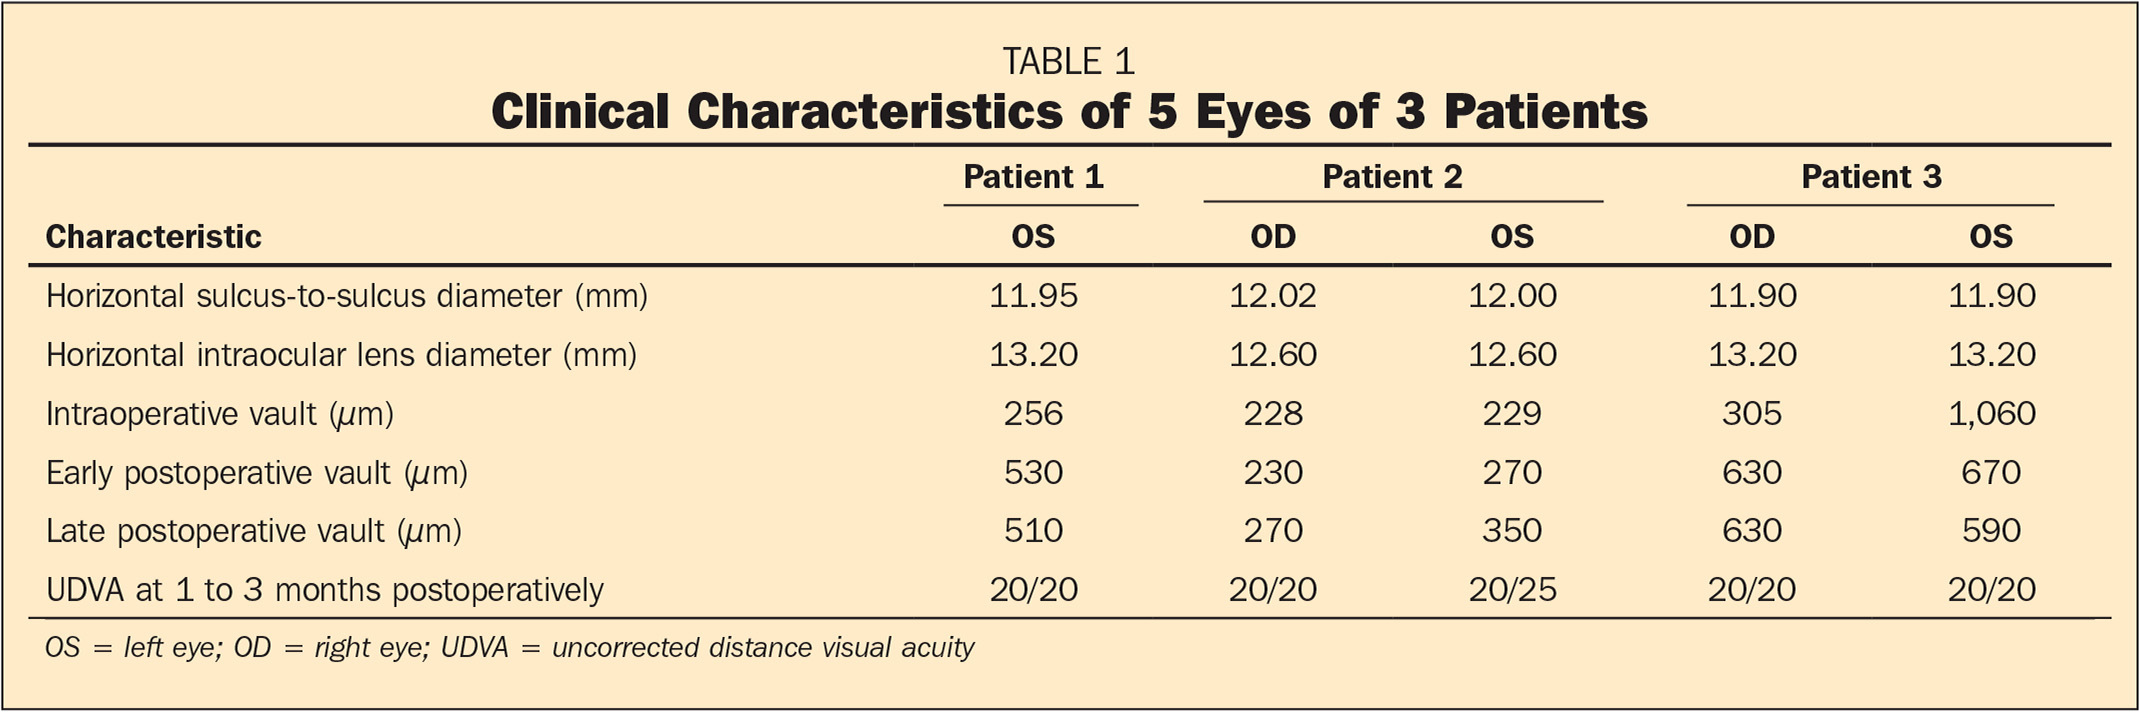 Clinical Characteristics of 5 Eyes of 3 Patients